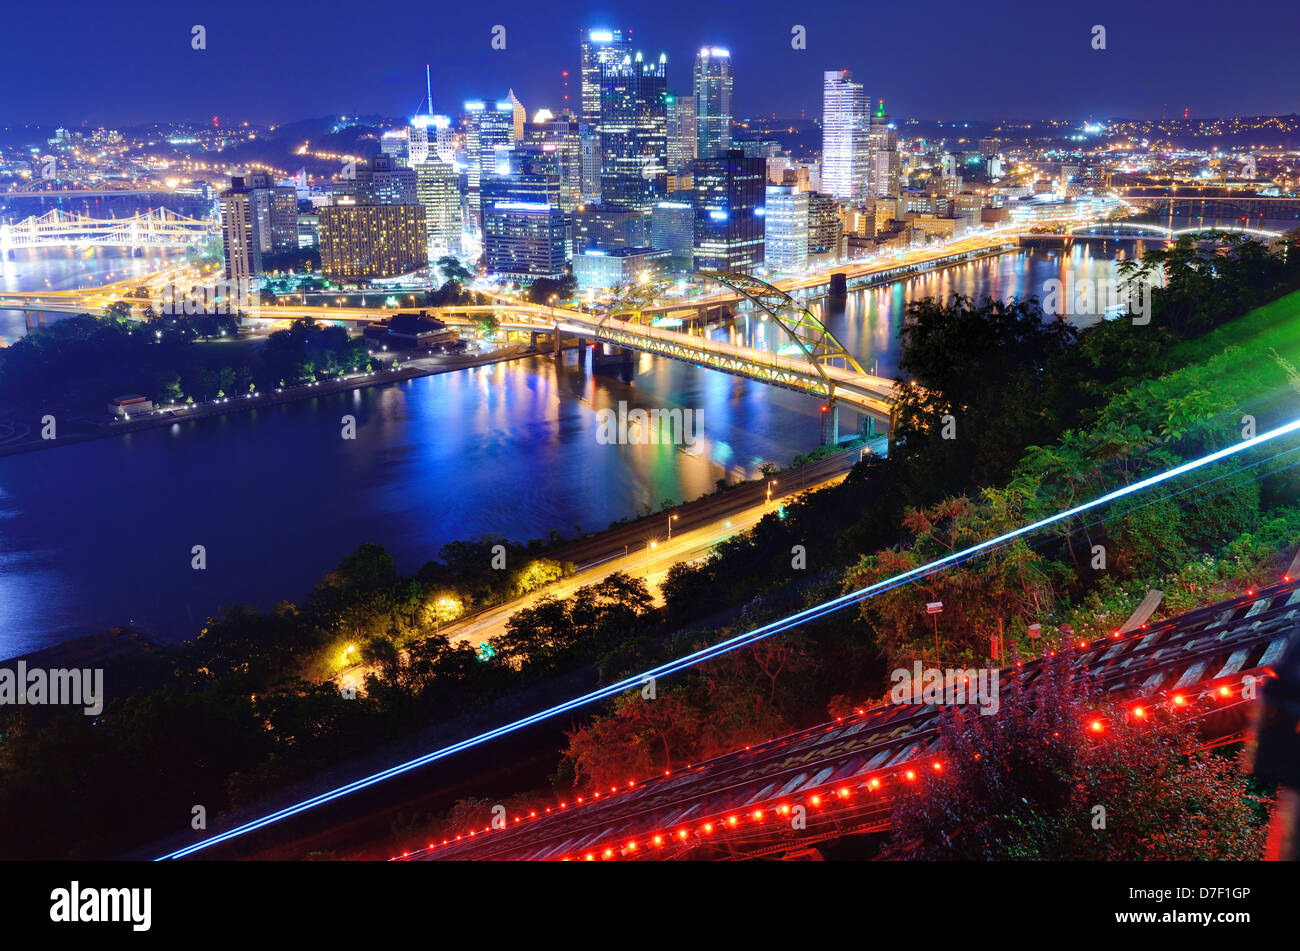 Light trails from the Pittsburgh, Pennsylvania incline. - Stock Image